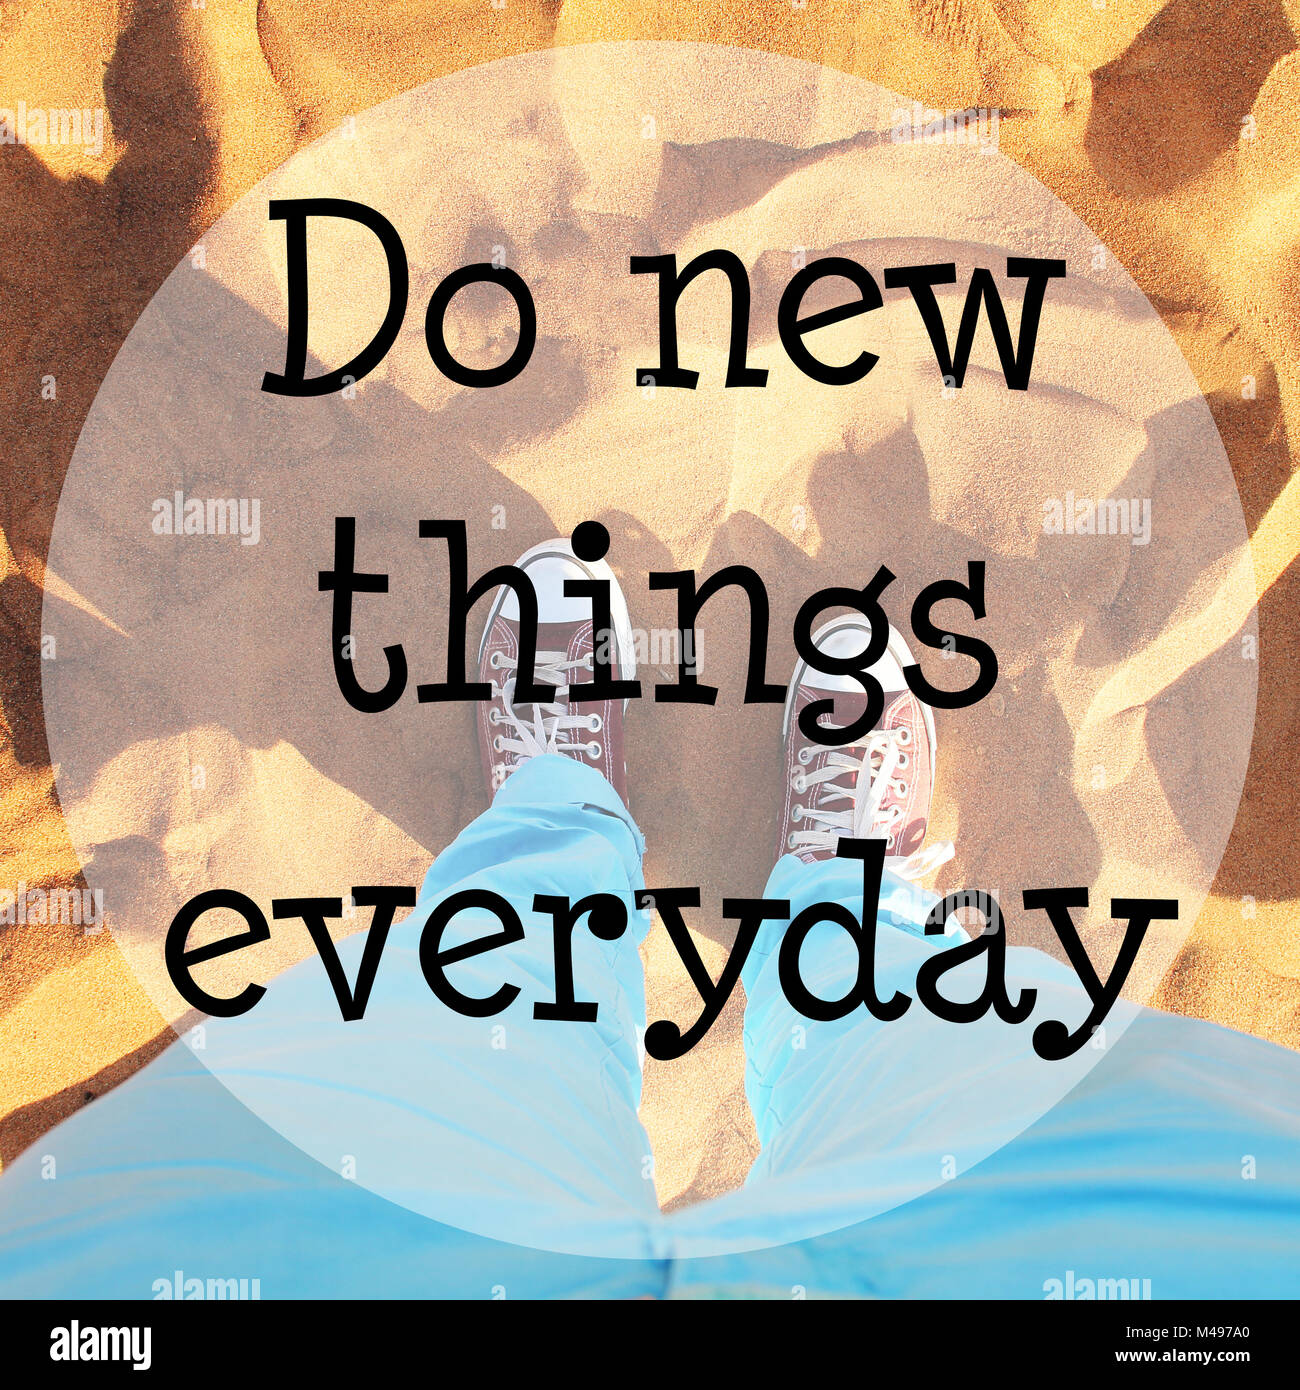 Desert sand with text: Do new things everyday - Stock Image